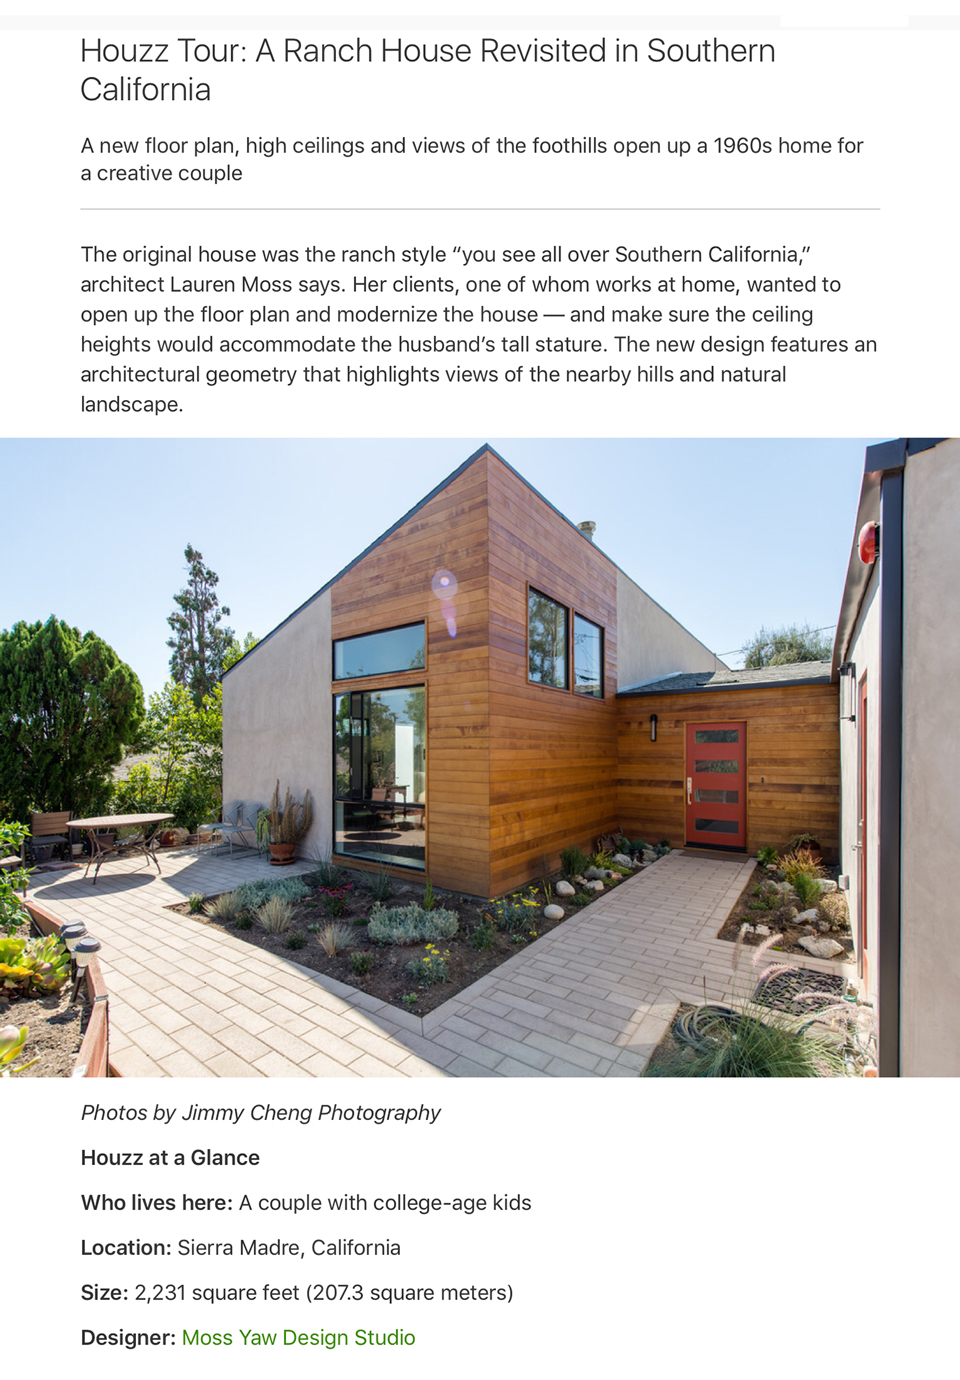 Houzz Tour: A Southern California Ranch House Revisited